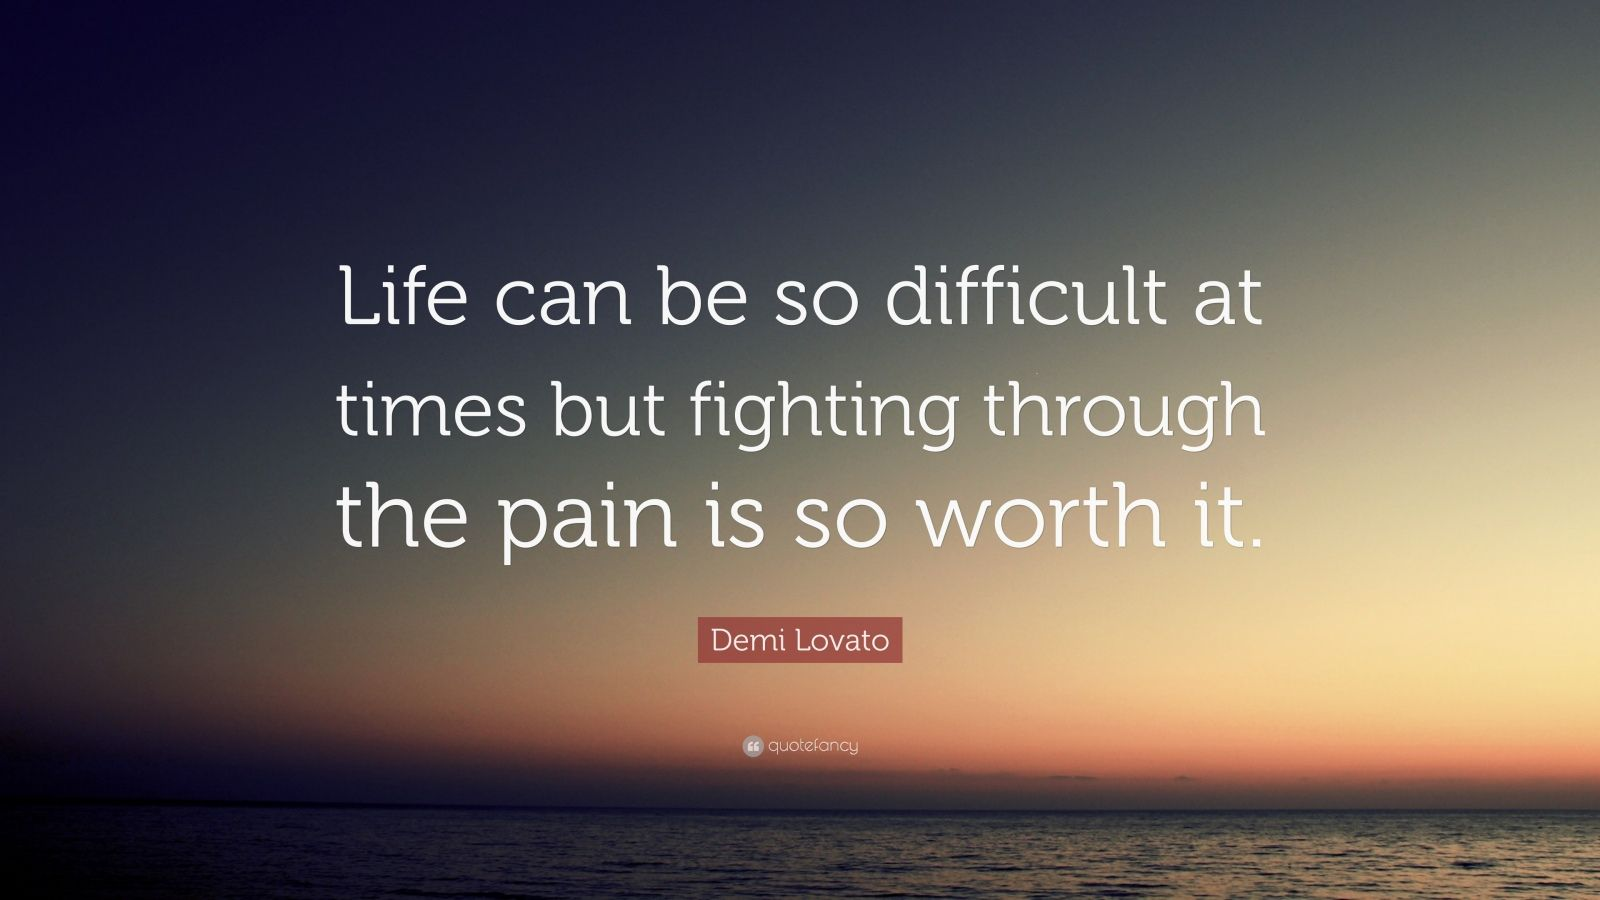 """Demi Lovato Quote: """"Life can be so difficult at times but fighting through the pain is so worth it."""""""